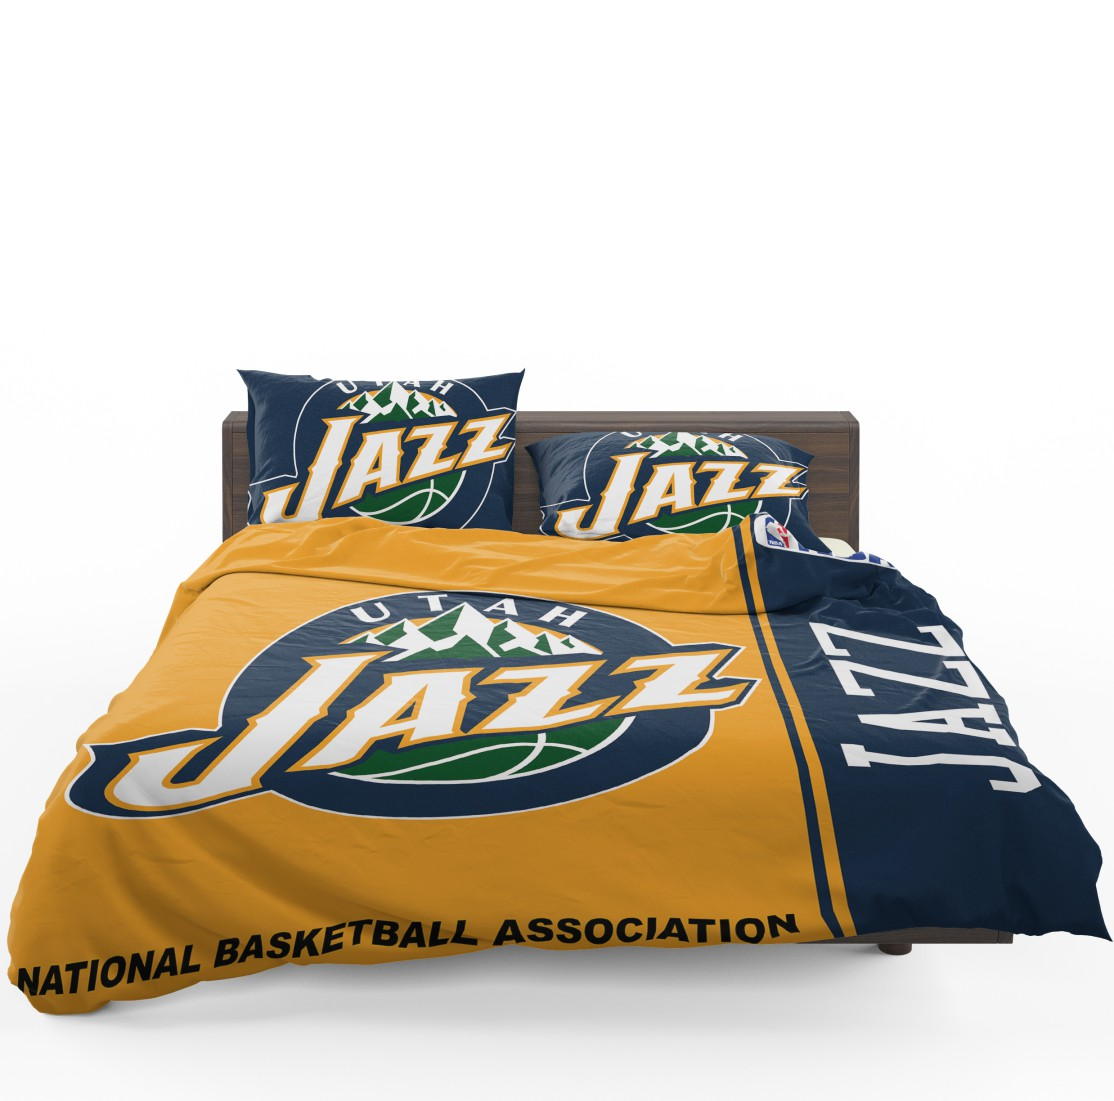 Utah Jazz NBA Basketball Bedding Set